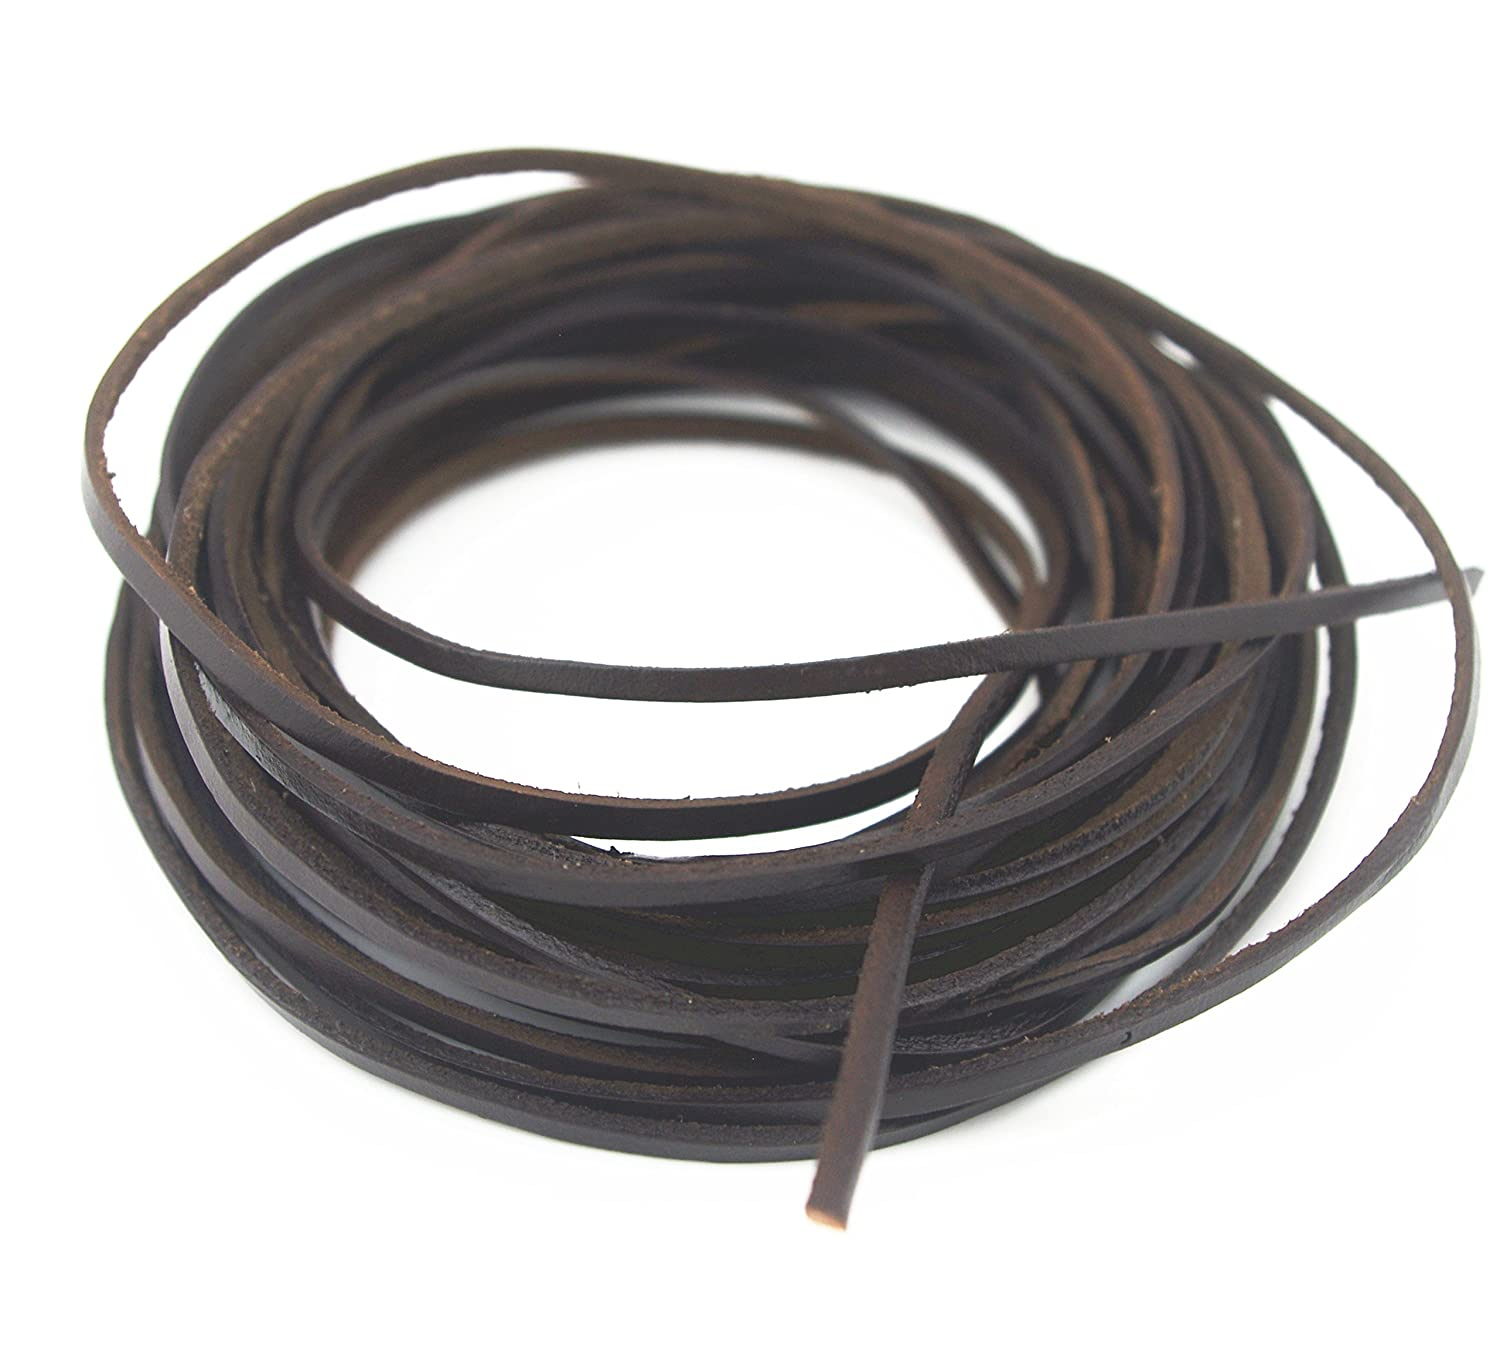 Dark Brown, 10 Yards Glory Qin 3x2 mm Genuine Cow Hide Flat Leather Srip,Genuine Leather Cord Real Leather Craft for Jewelry Making LeatherRush